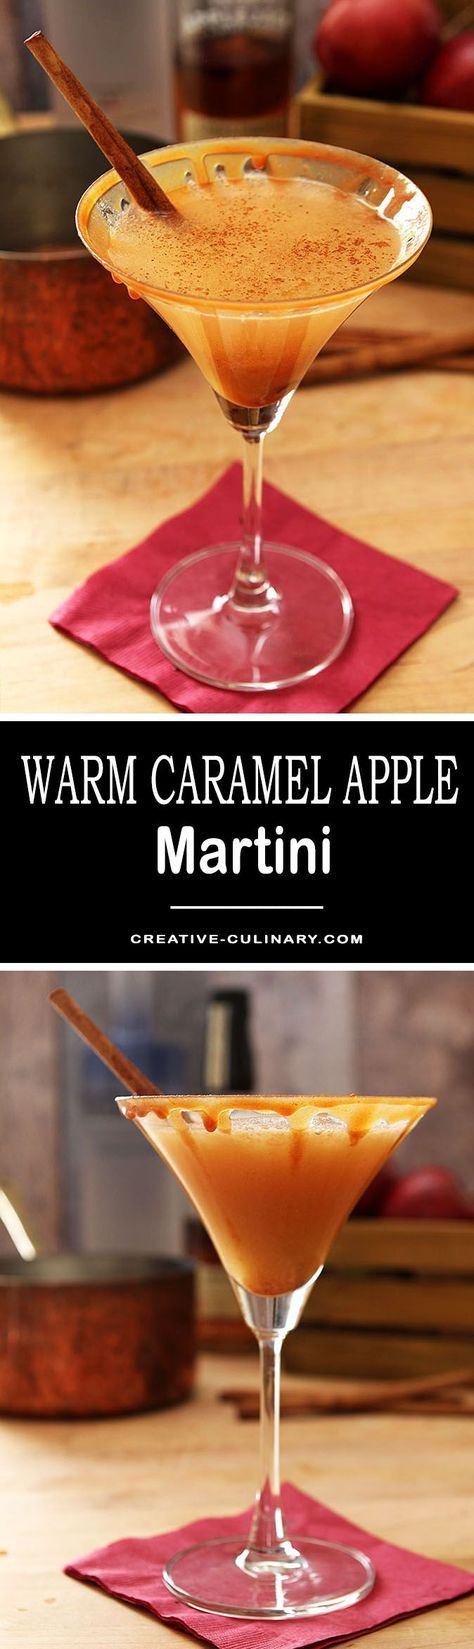 This is a lovely cool weather dessert cocktail with flavors of apple and caramel; the vodka keeps this Warm Caramel Apple Cider Martini honest as a cocktail and it's so good! via @creativculinary {wine glass writer}